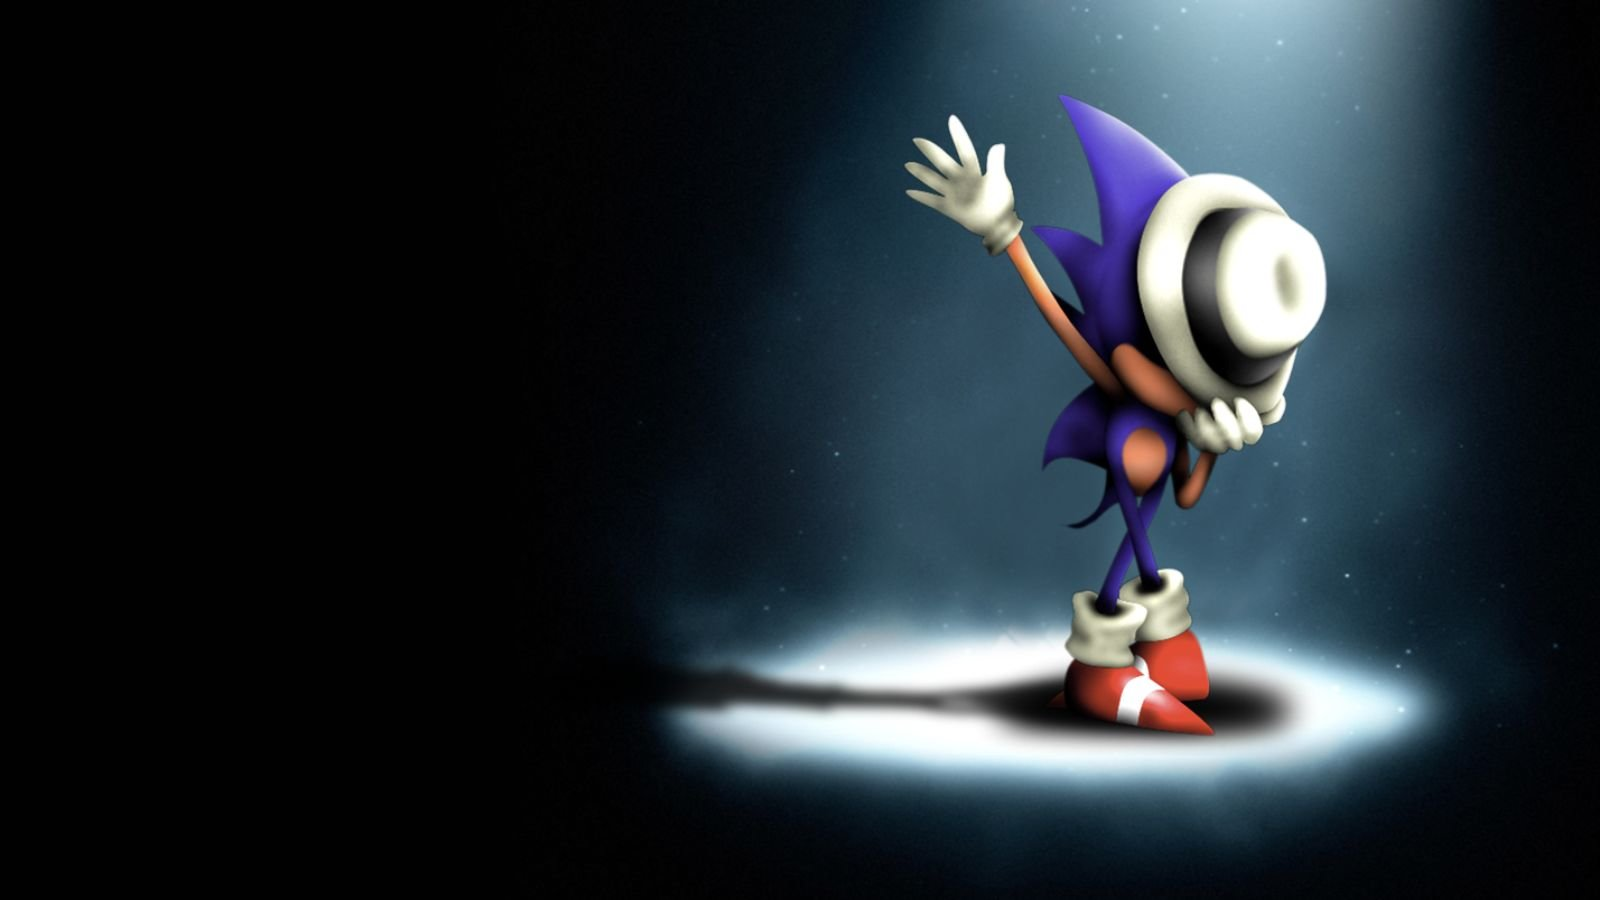 Michael Jackson Sonic Sega Entertainment Wallpaper Wallpapers Style 1600x900